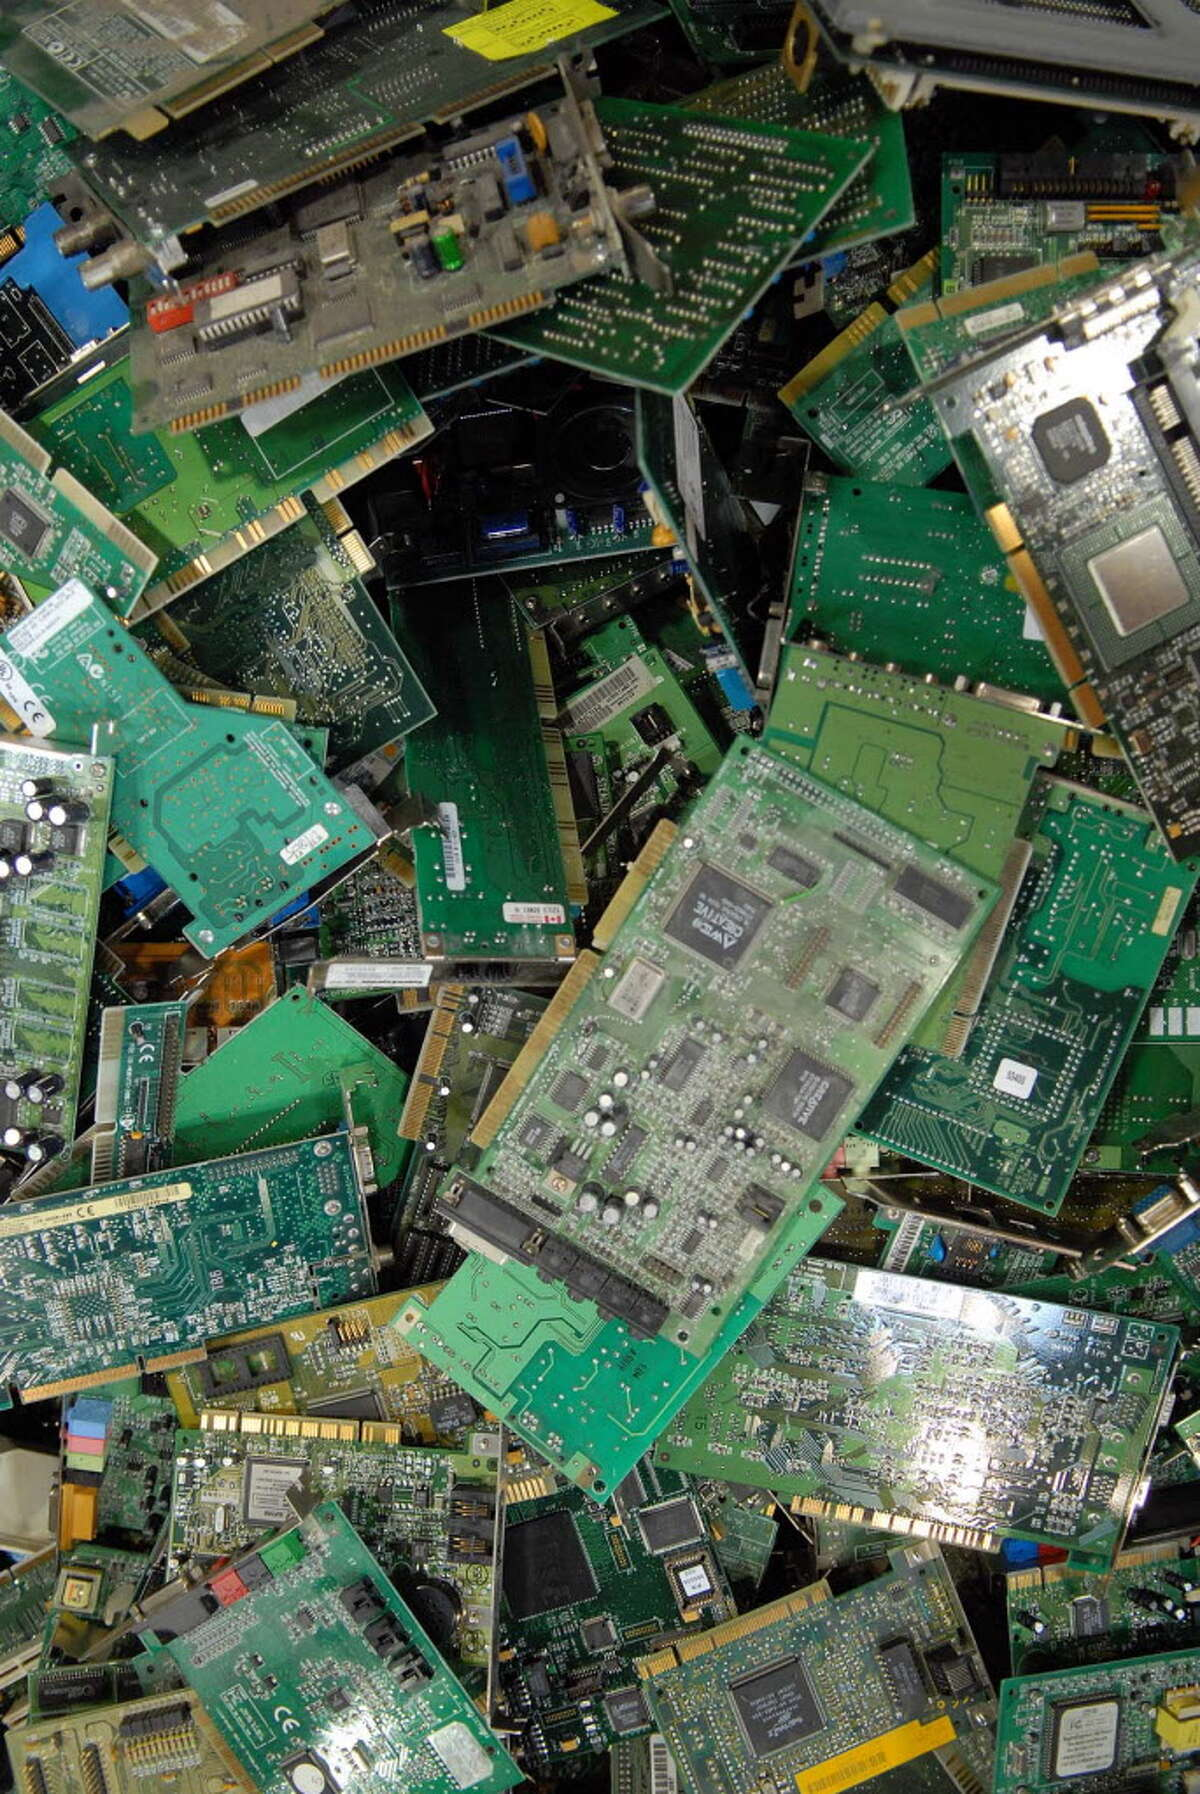 An electronics recycling firm has been hit with more than $15,000 in state environmental fines for improper storage and handling of old electronics, which can contain toxic metals like mercury and lead. Maish Freedman, owner of eLot Electronics Recycling, said the fines reflected temporary issues stemming from the company's move from Troy to its facility on Hannay Lane in Glenmont in June 2015.